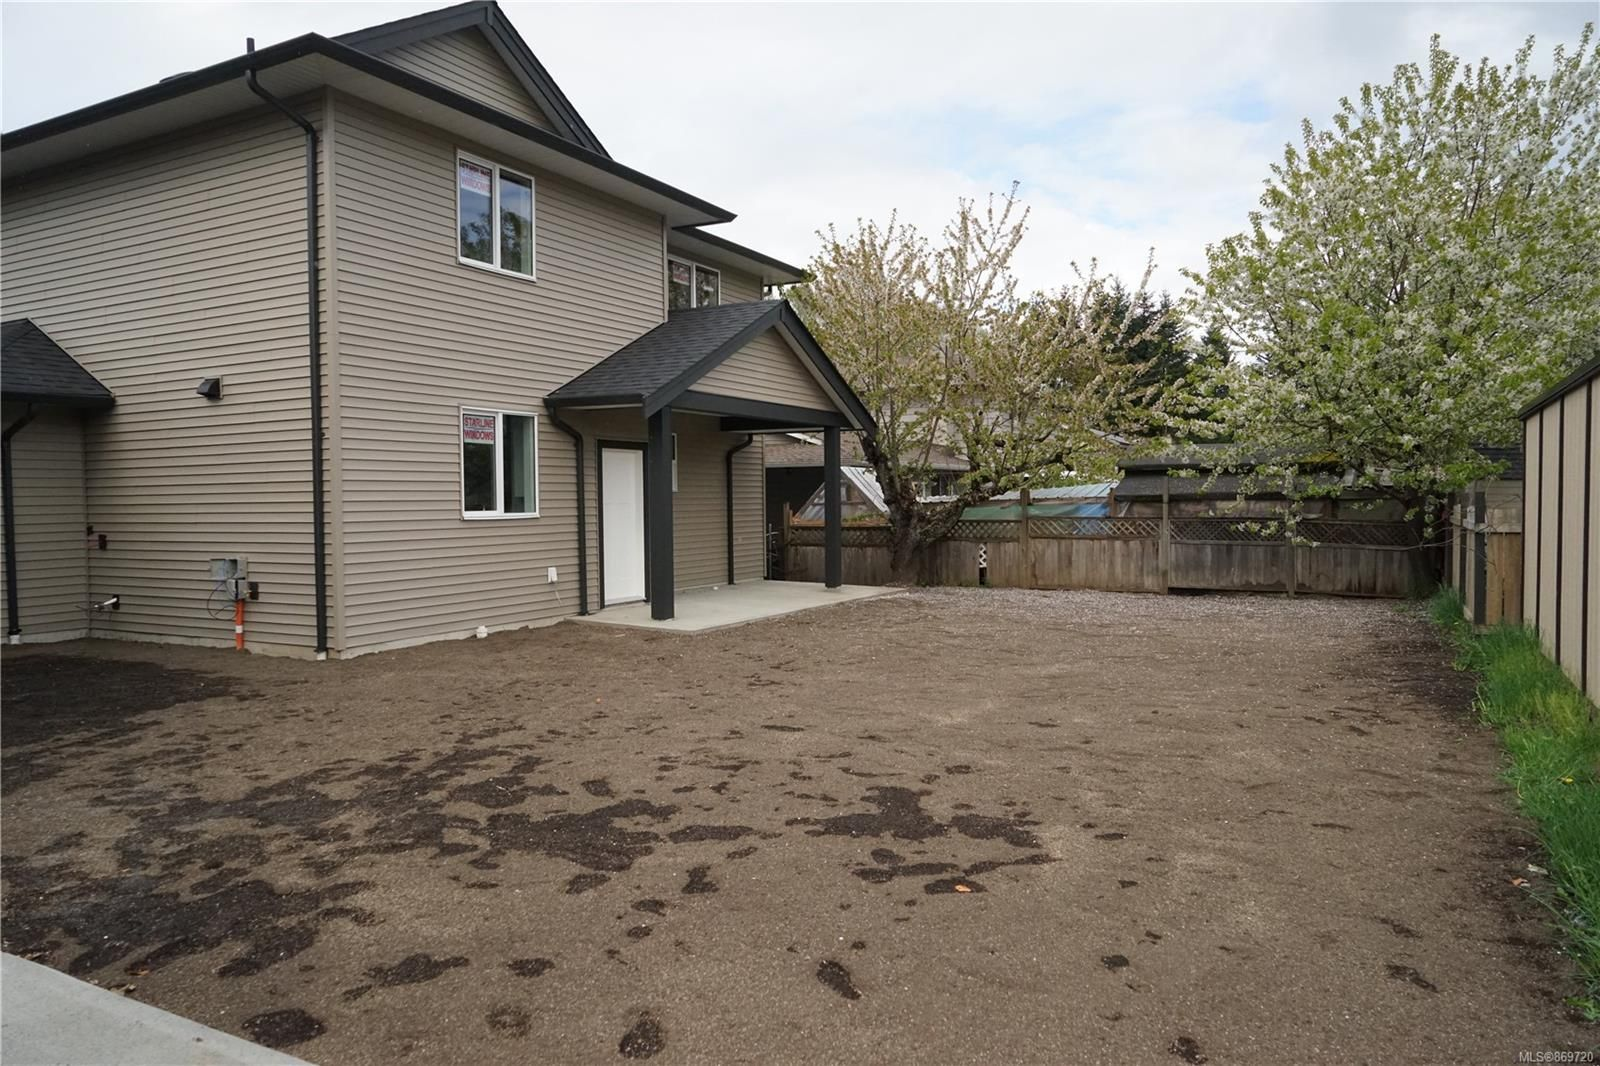 Photo 8: Photos: 770 Bruce Ave in : Na South Nanaimo House for sale (Nanaimo)  : MLS®# 869720